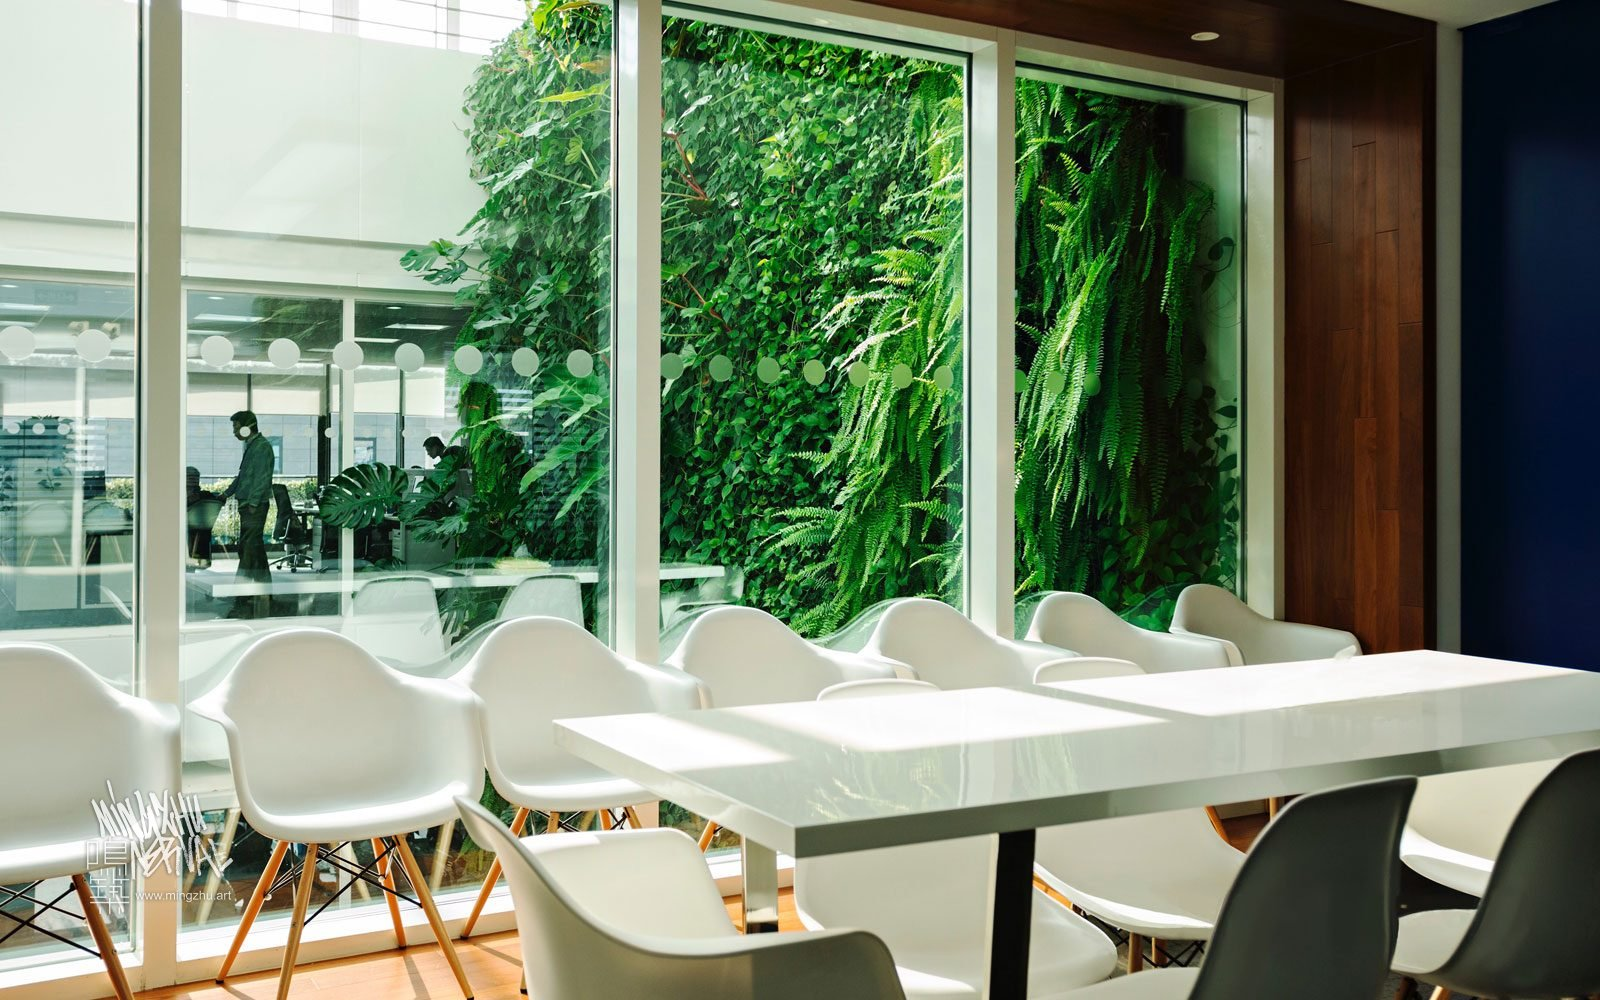 At Mingzhu Nerval, we thrive at creating the most beautiful vertical gardens in the world. For Clariant, we created a gorgeous living wall design - Shanghai, 2010.